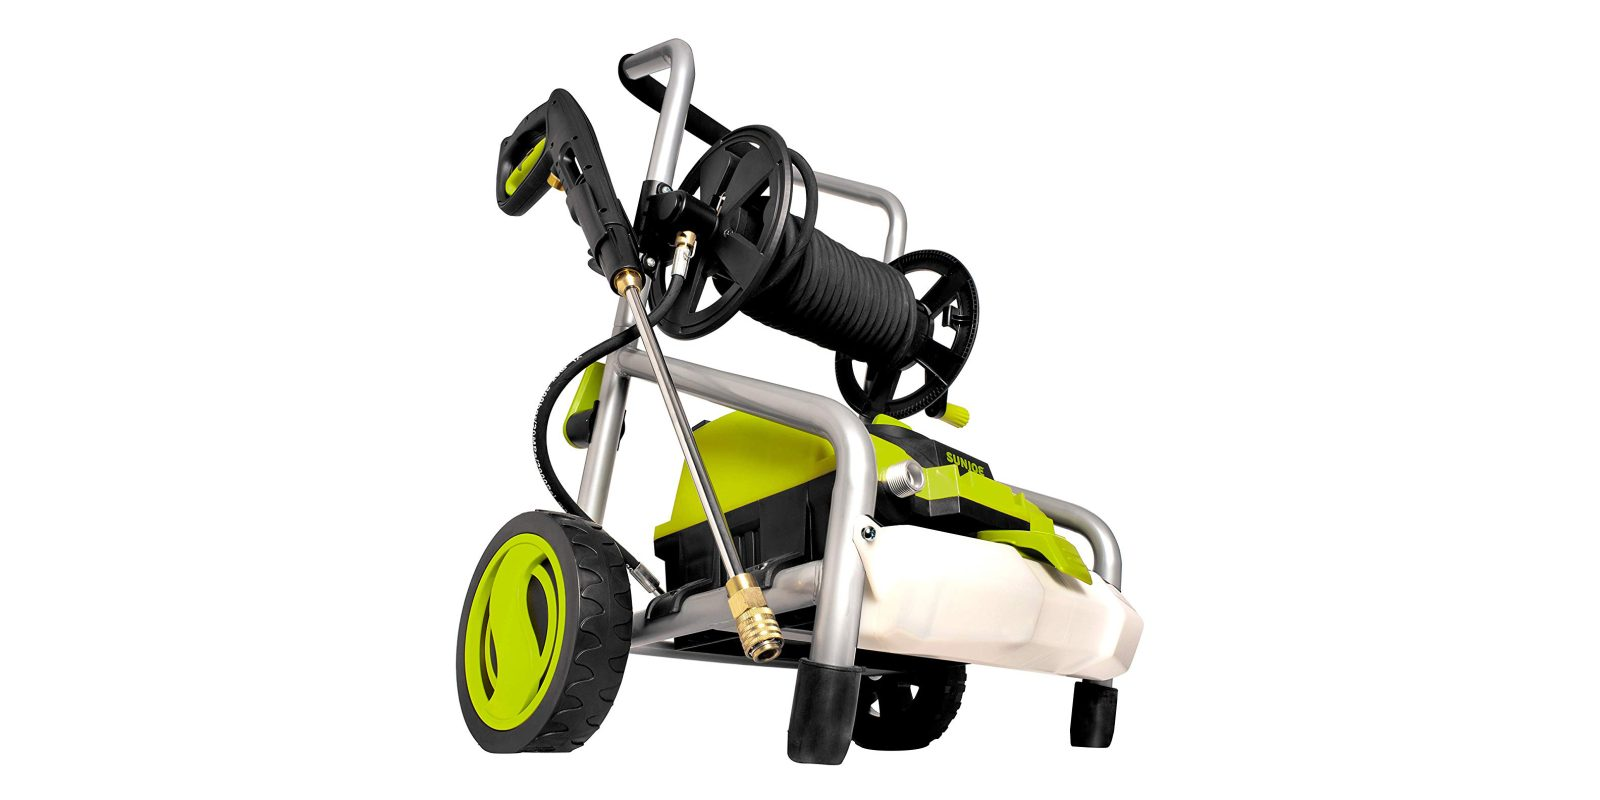 Add Sun Joe's 14A Electric Pressure Washer to your arsenal for $124, more in today's Green Deals